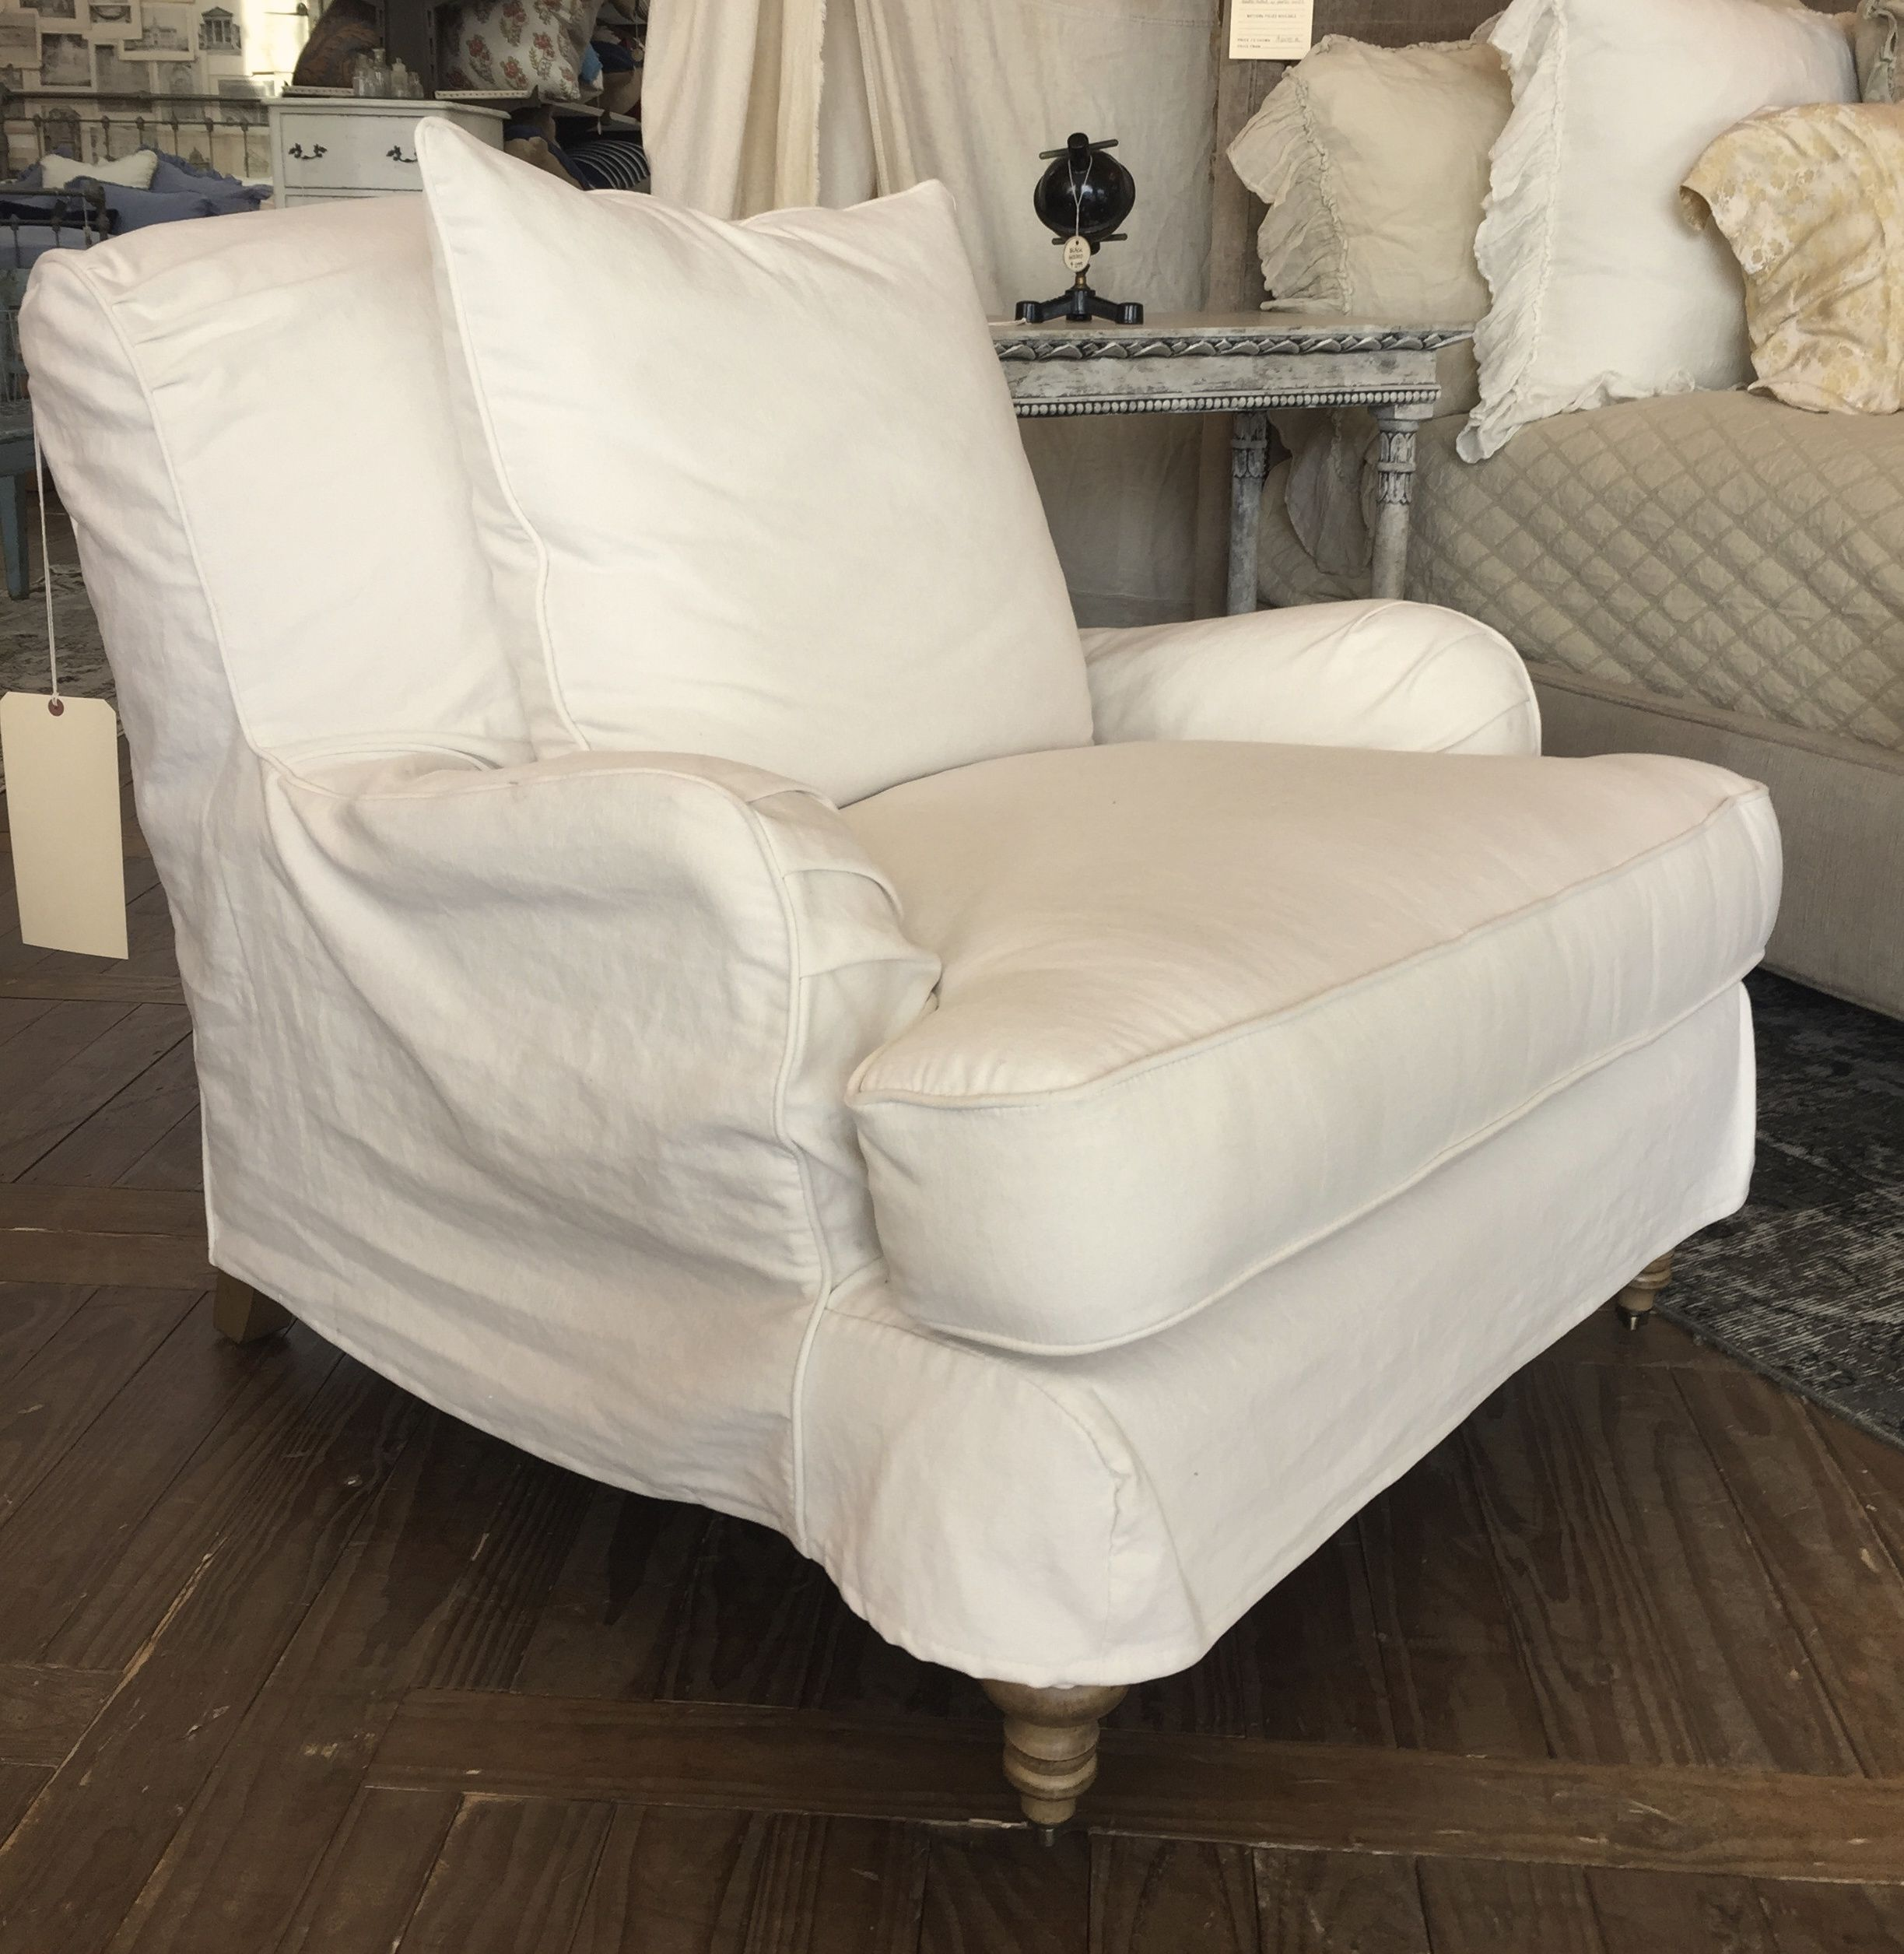 English roll arm chair with washable cotton slipcover a